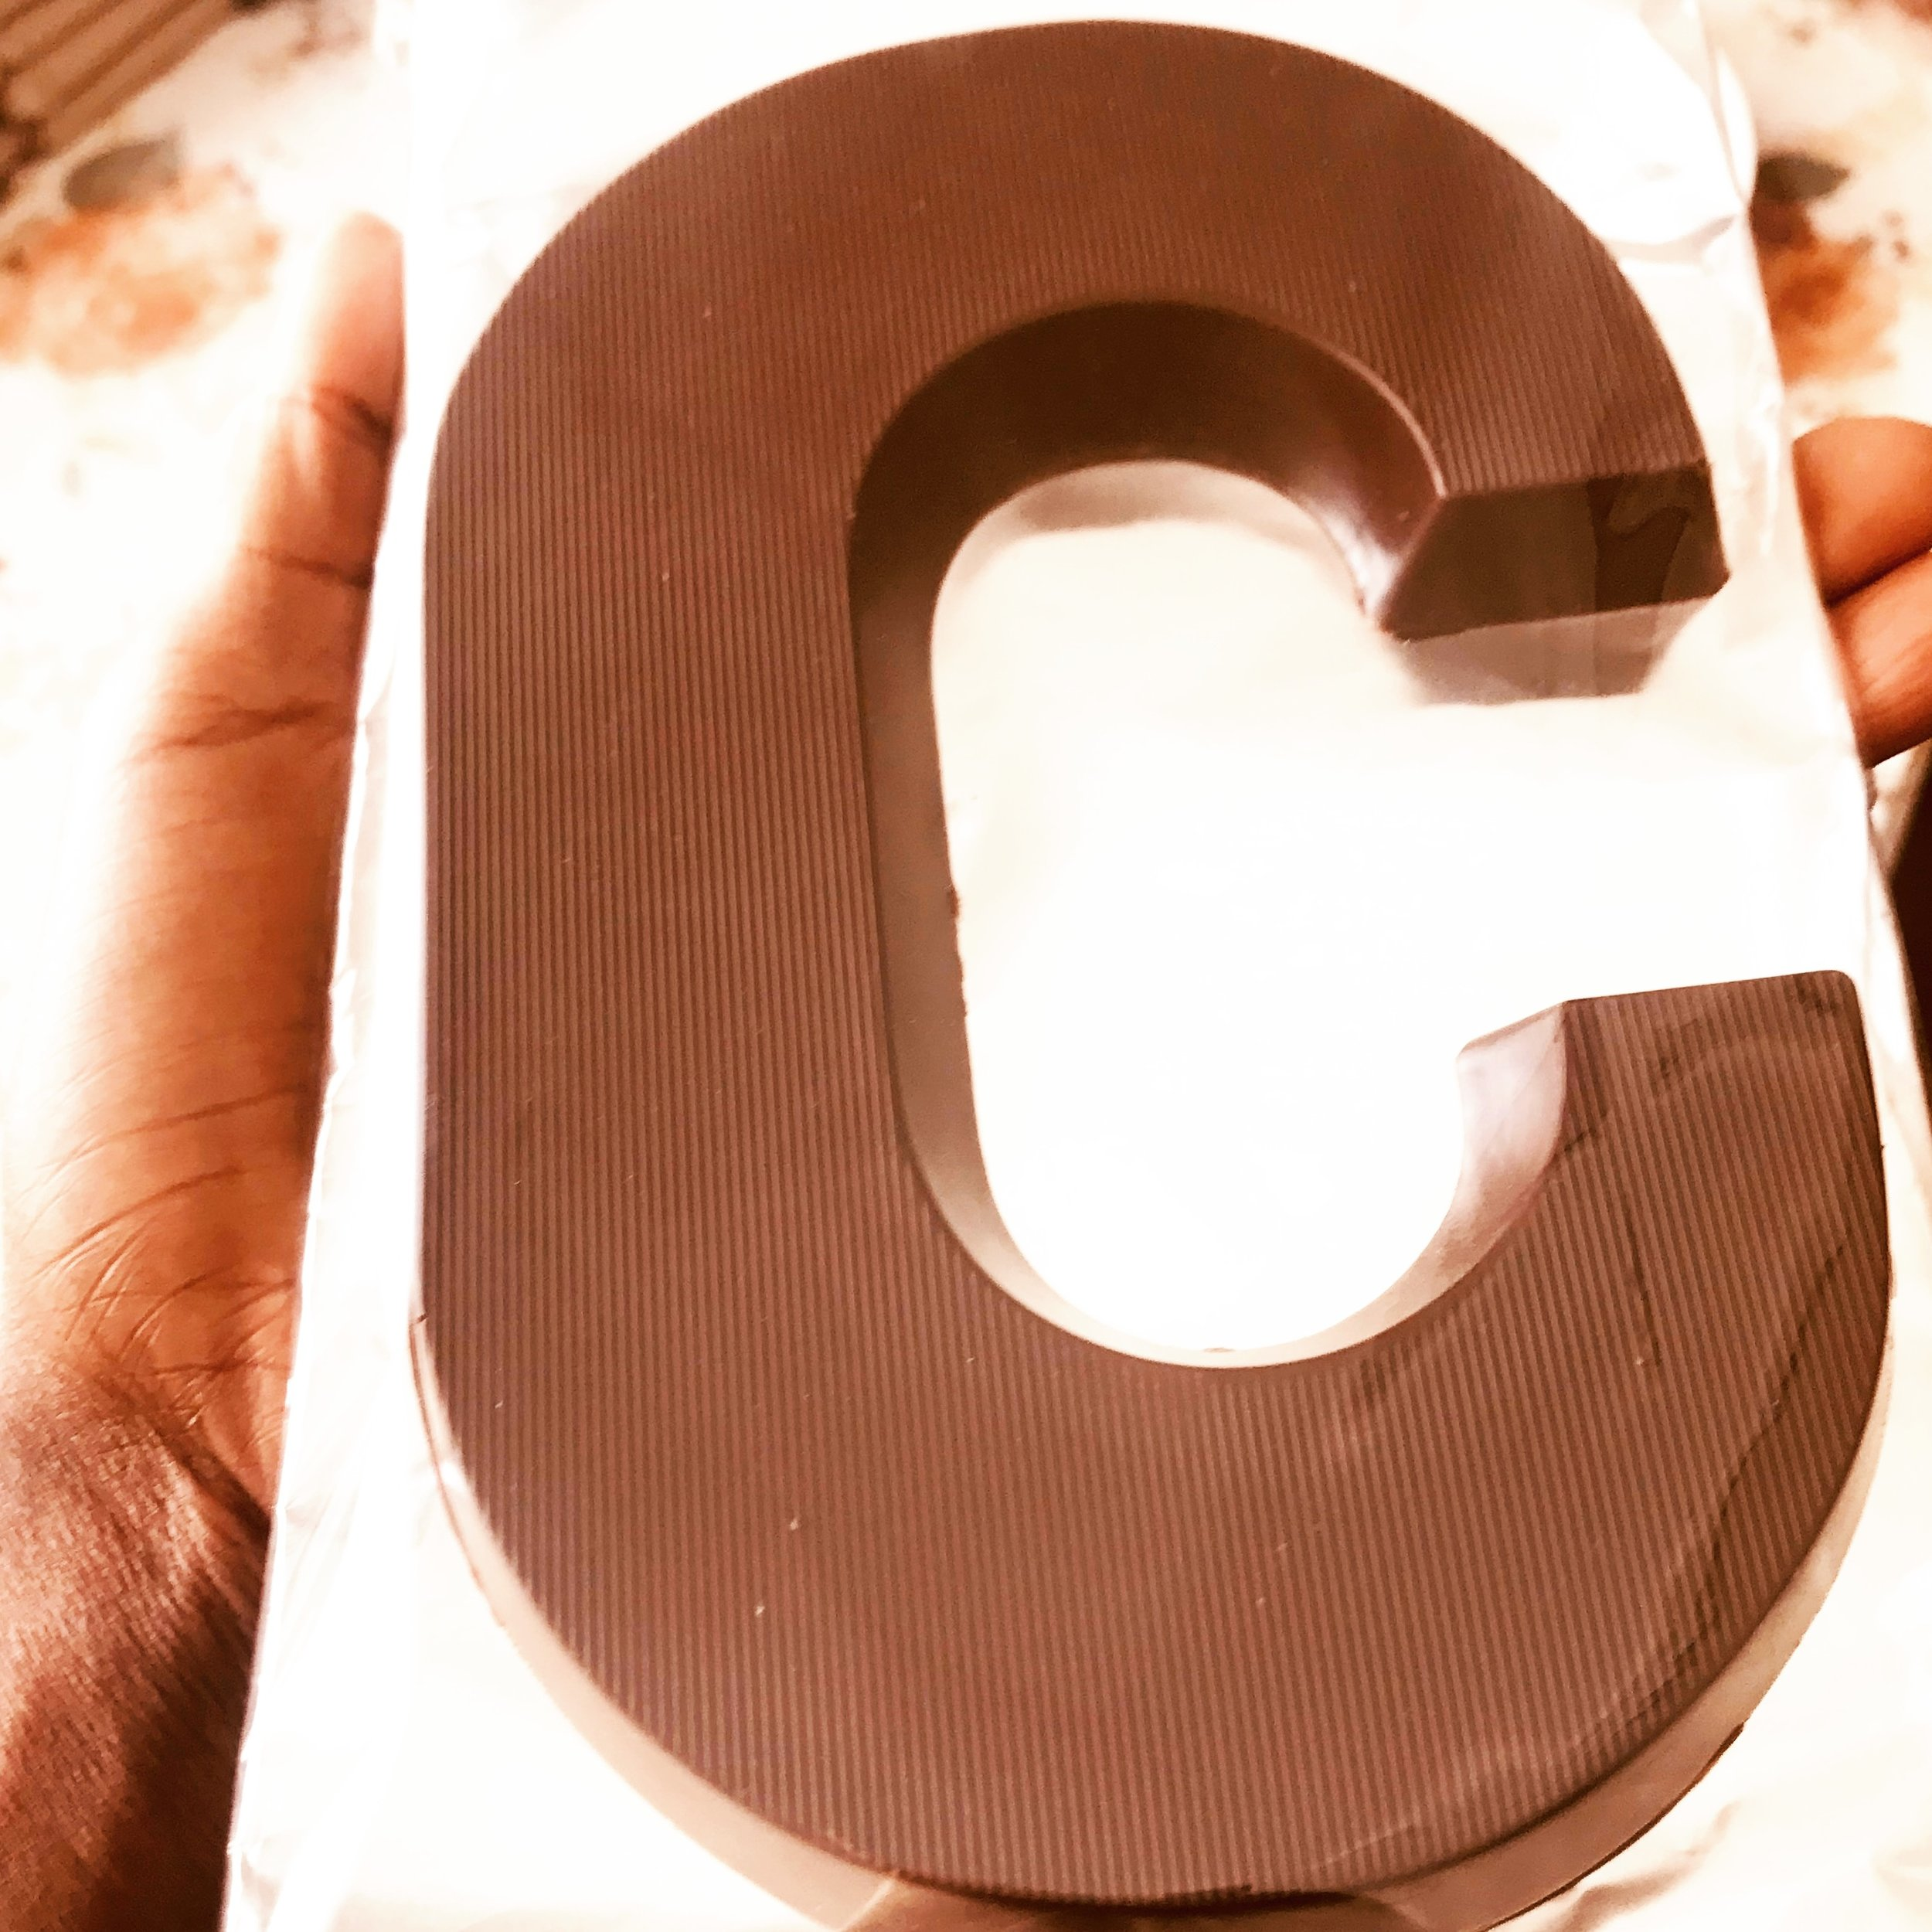 LARGE LETTERS 200g   C & M available  ZMW120 per letter